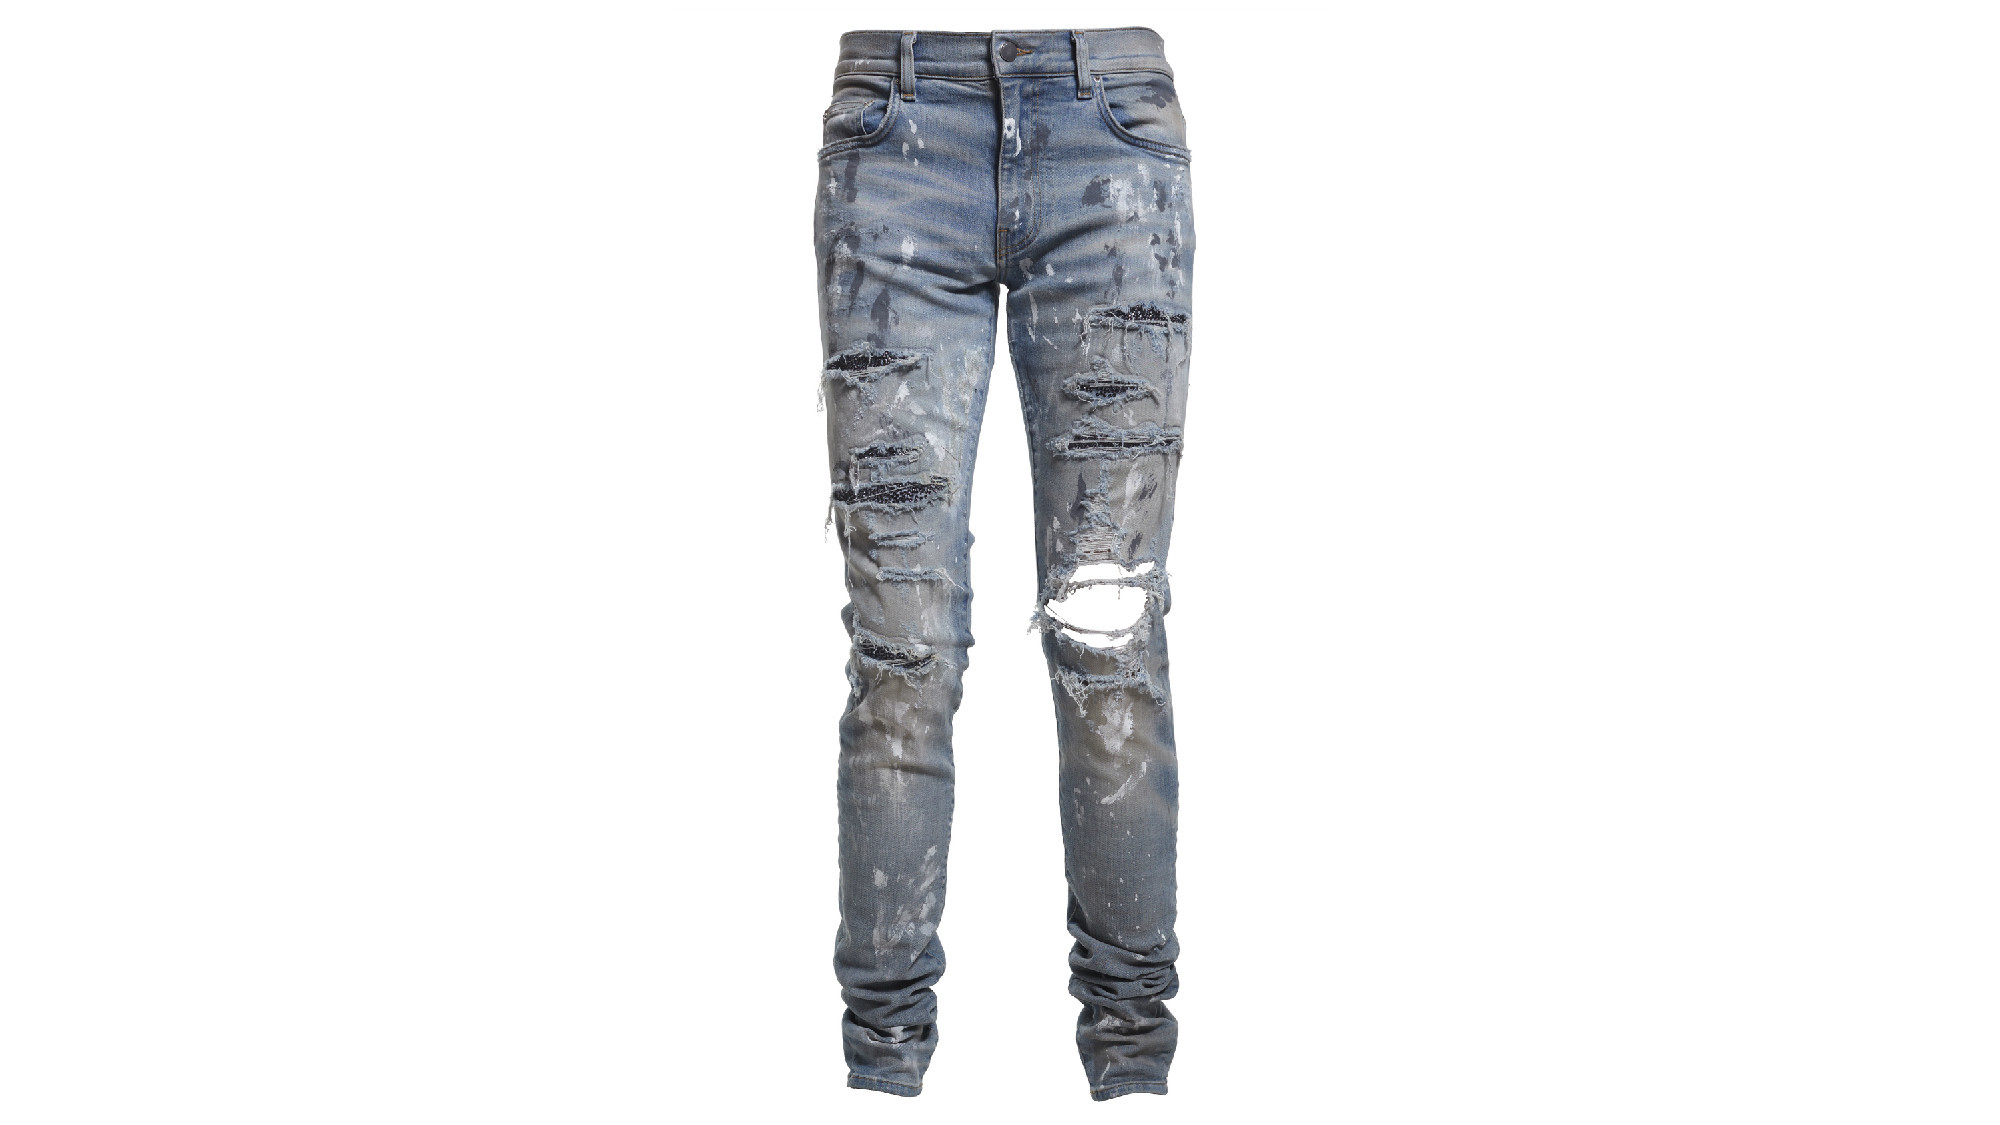 A look at distressed men's jeans with Swarovski crystals from Amiri.